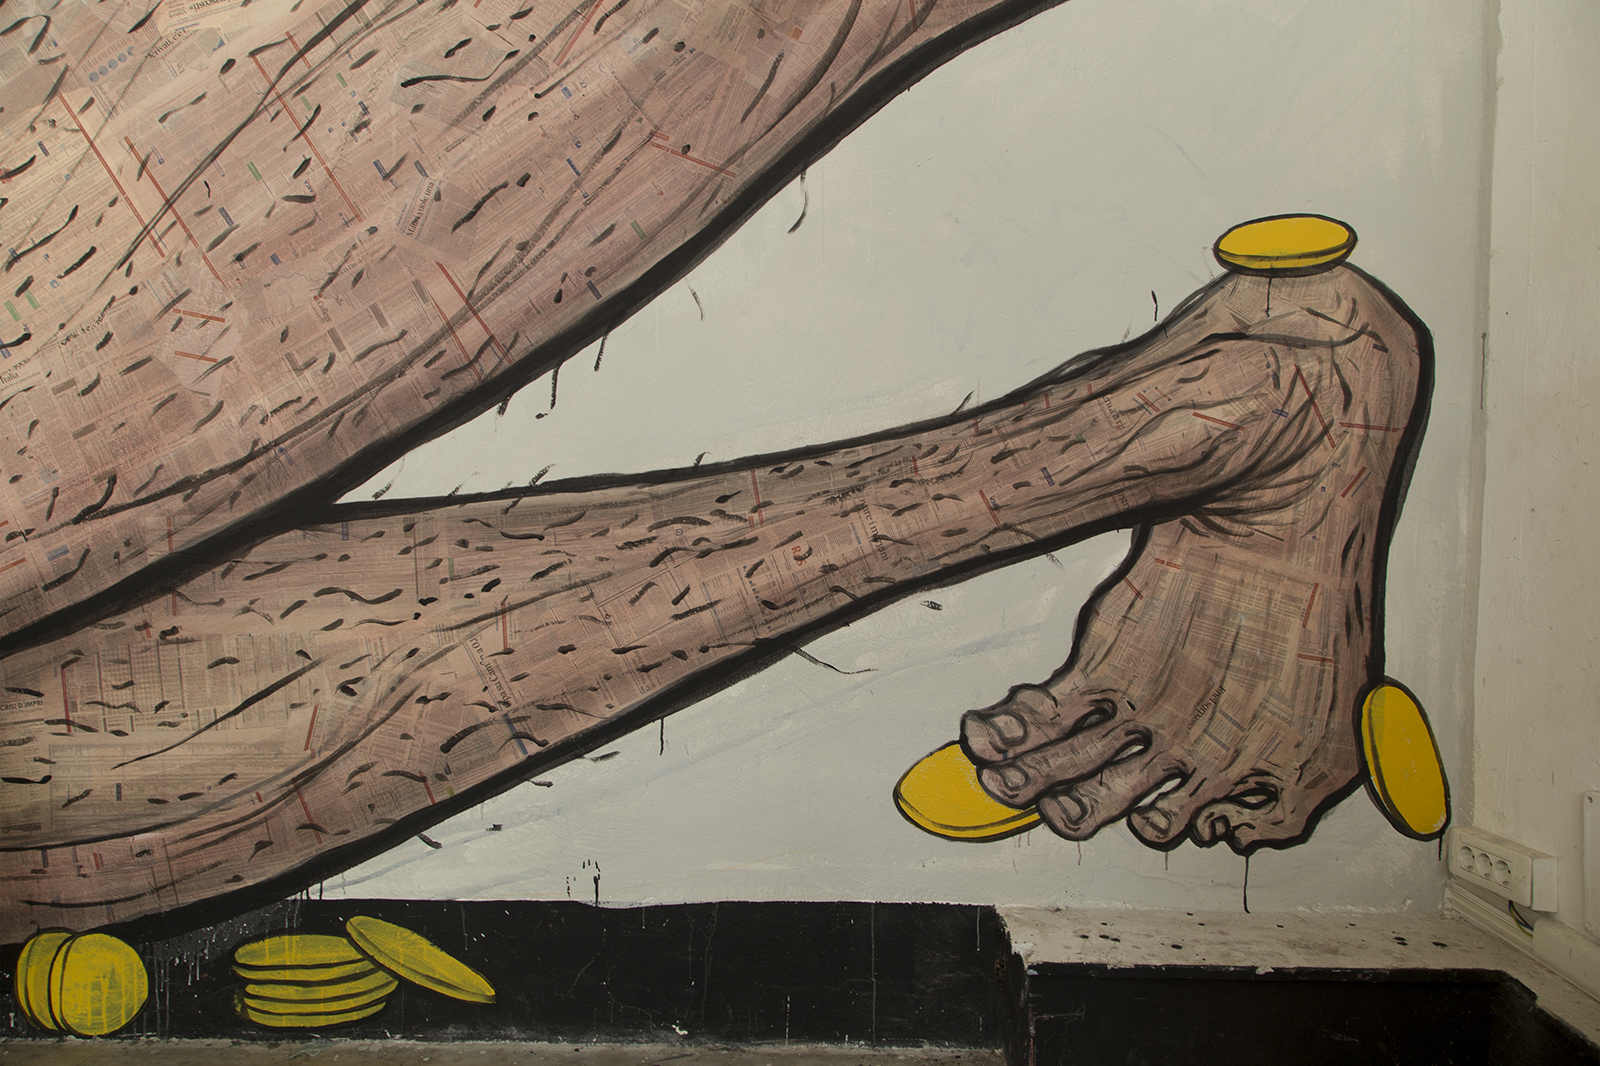 nemos-new-mural-at-teatro-mediterraneo-occupato-03